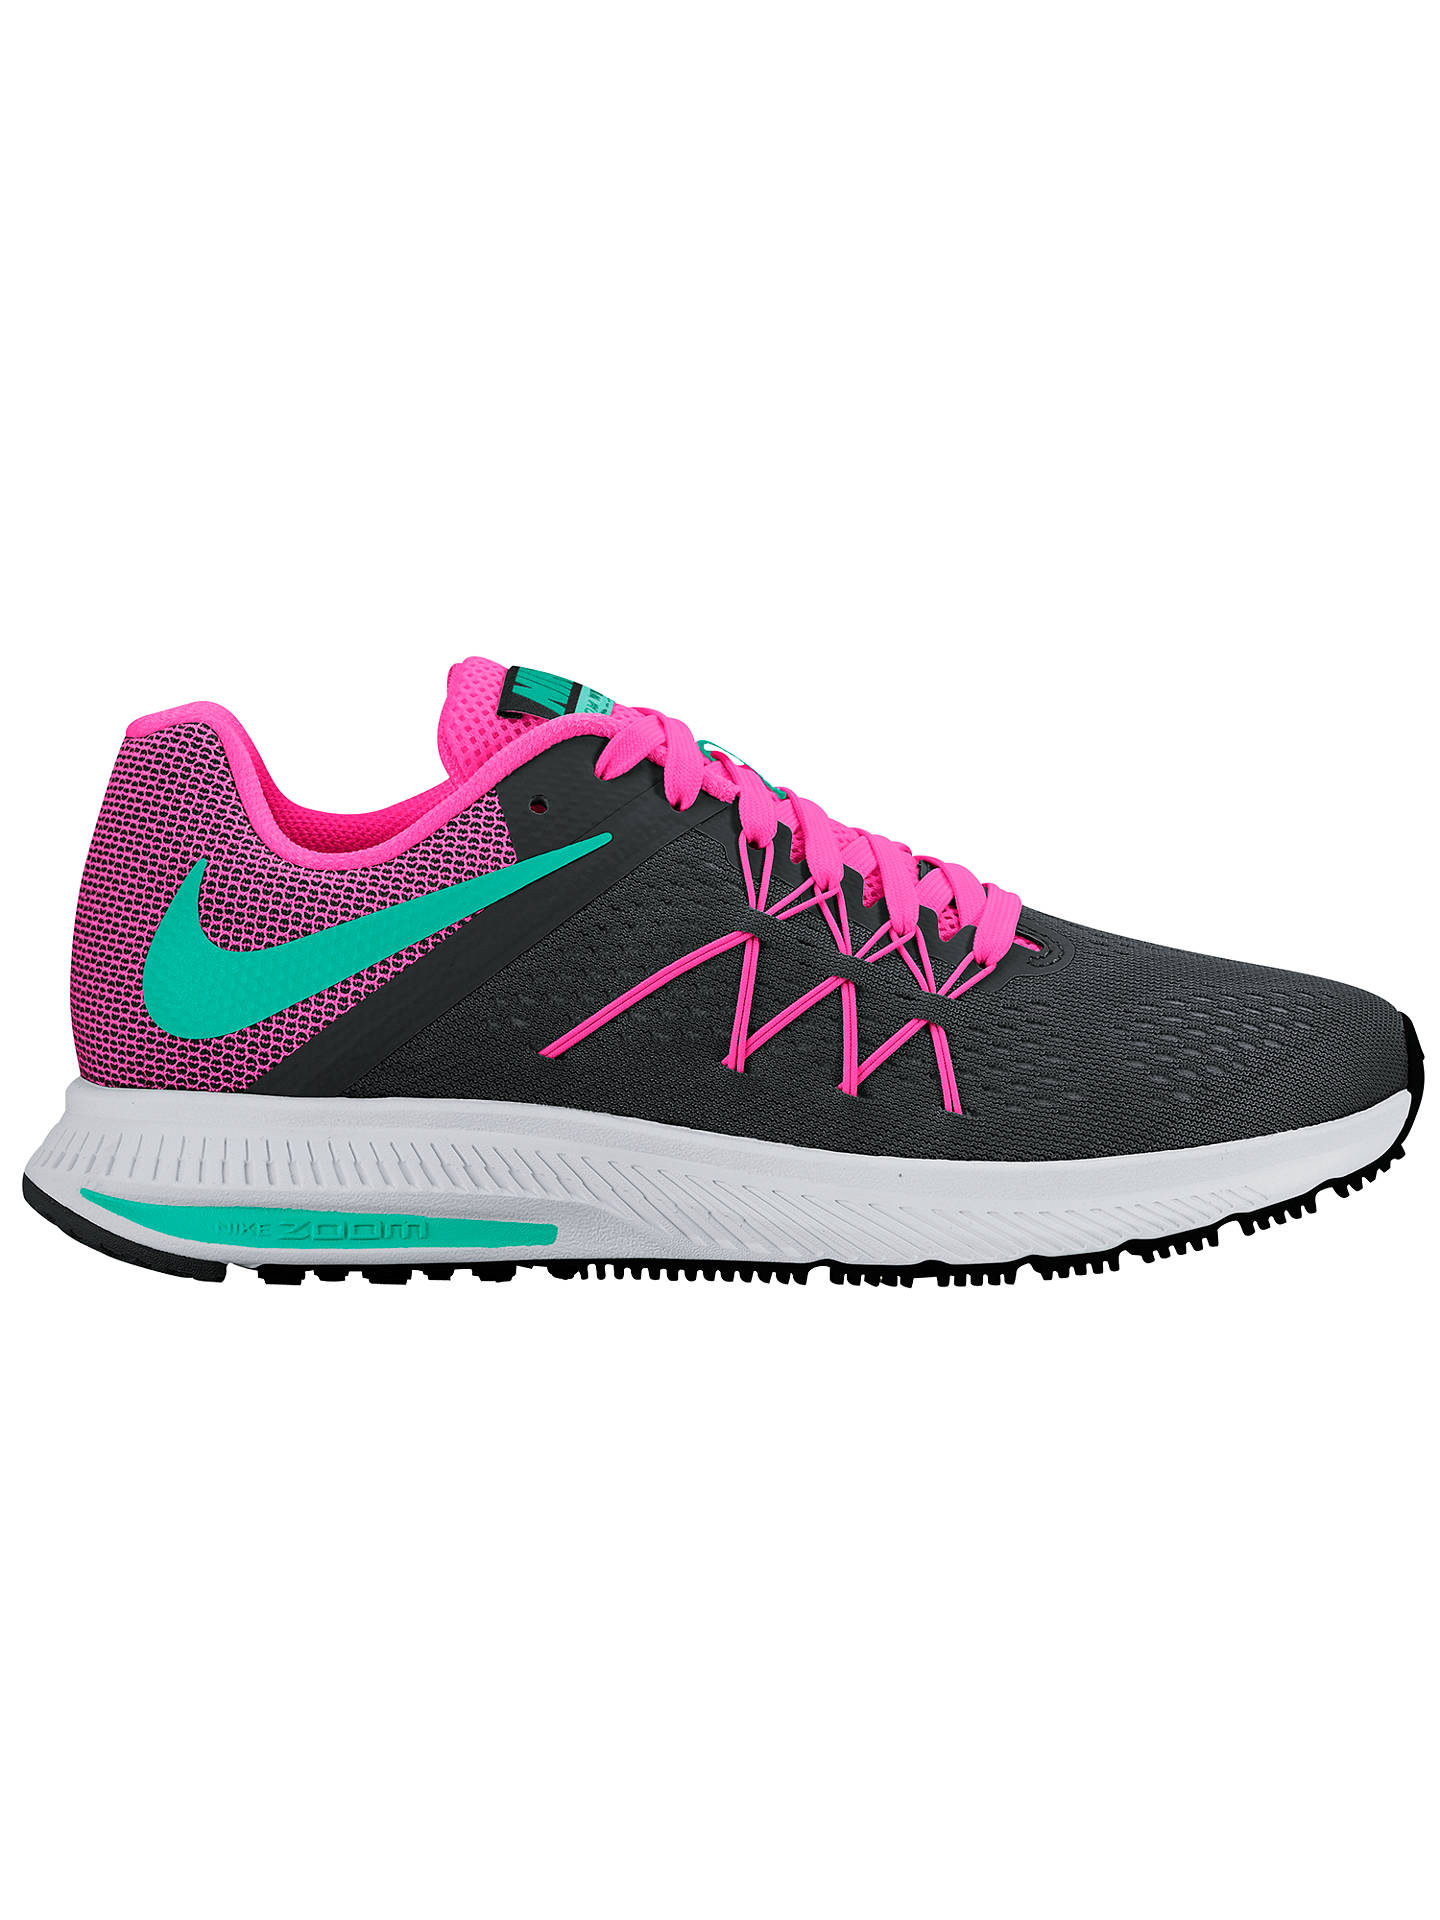 d13fcc652de65 Buy Nike Air Zoom Winflo 3 Women s Running Shoes